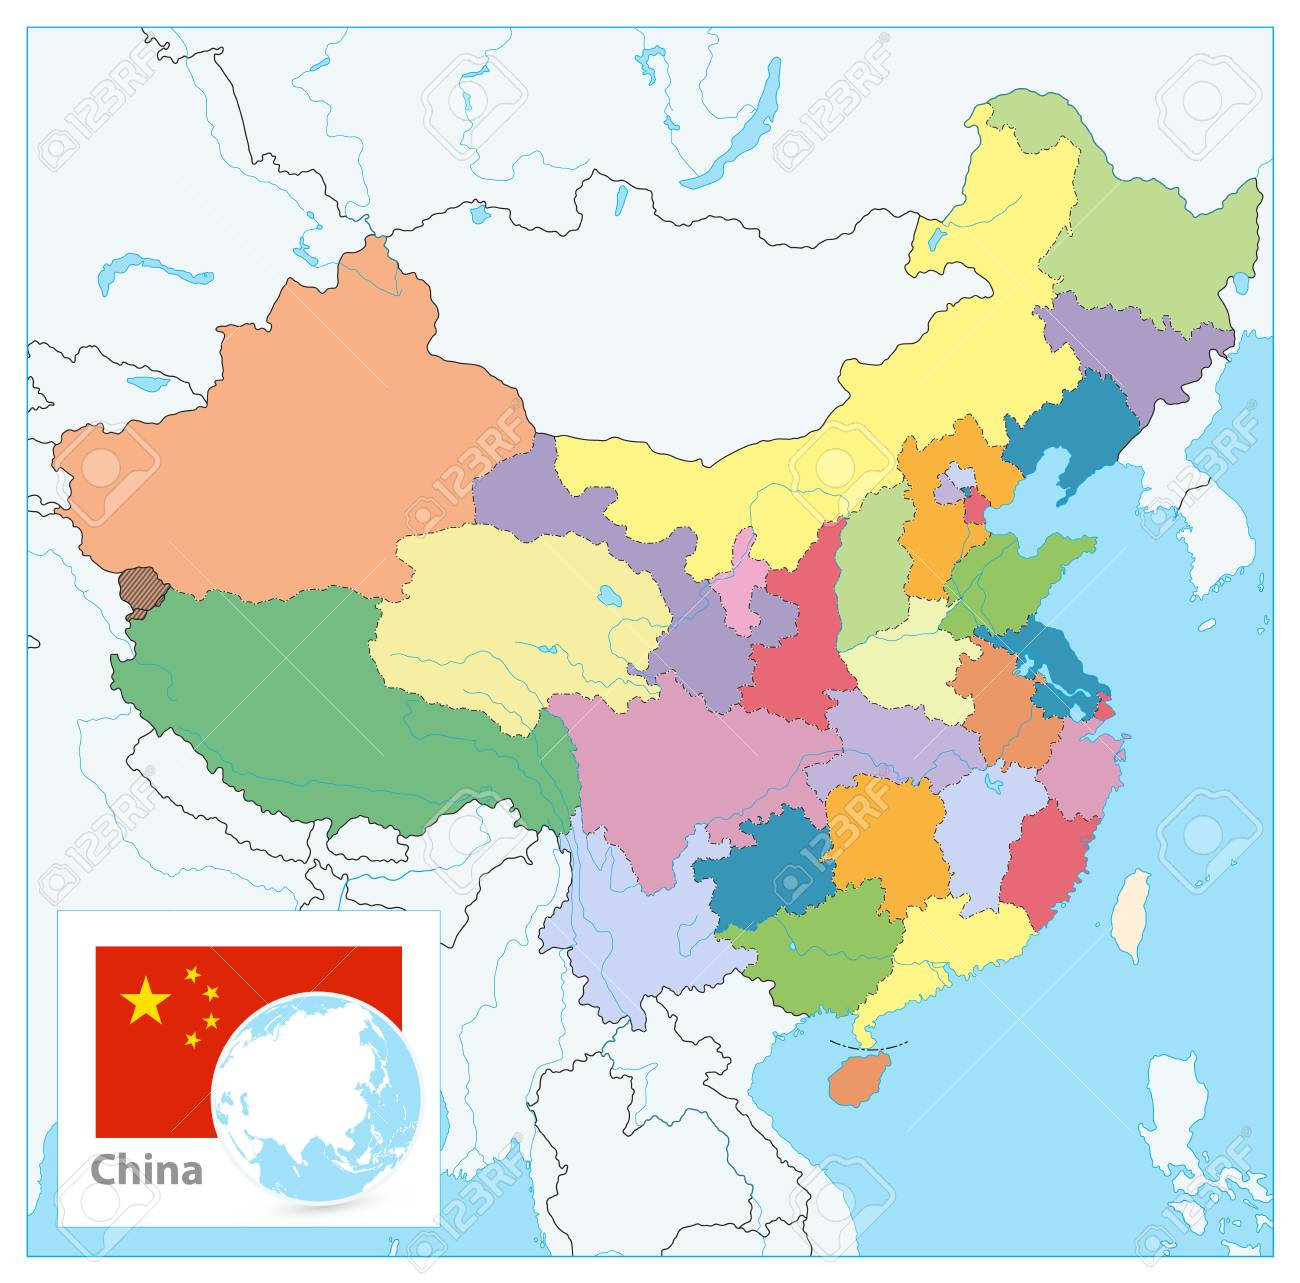 China Political Map. No text. Detailed vector map of China with.. on map italy cities, map of shanghai, map of florida east coast railway, map canada cities, map germany cities, map of christianity religion, chinese map china cities, map china cities guangzhou province, map spain cities, map of koblenz, germany, map of japan, map of chinese people, map big cities in china, map of palermo, italy, map of thailand, map of canada history, english in china map with cities, china provinces and cities, map of india states, map usa cities,